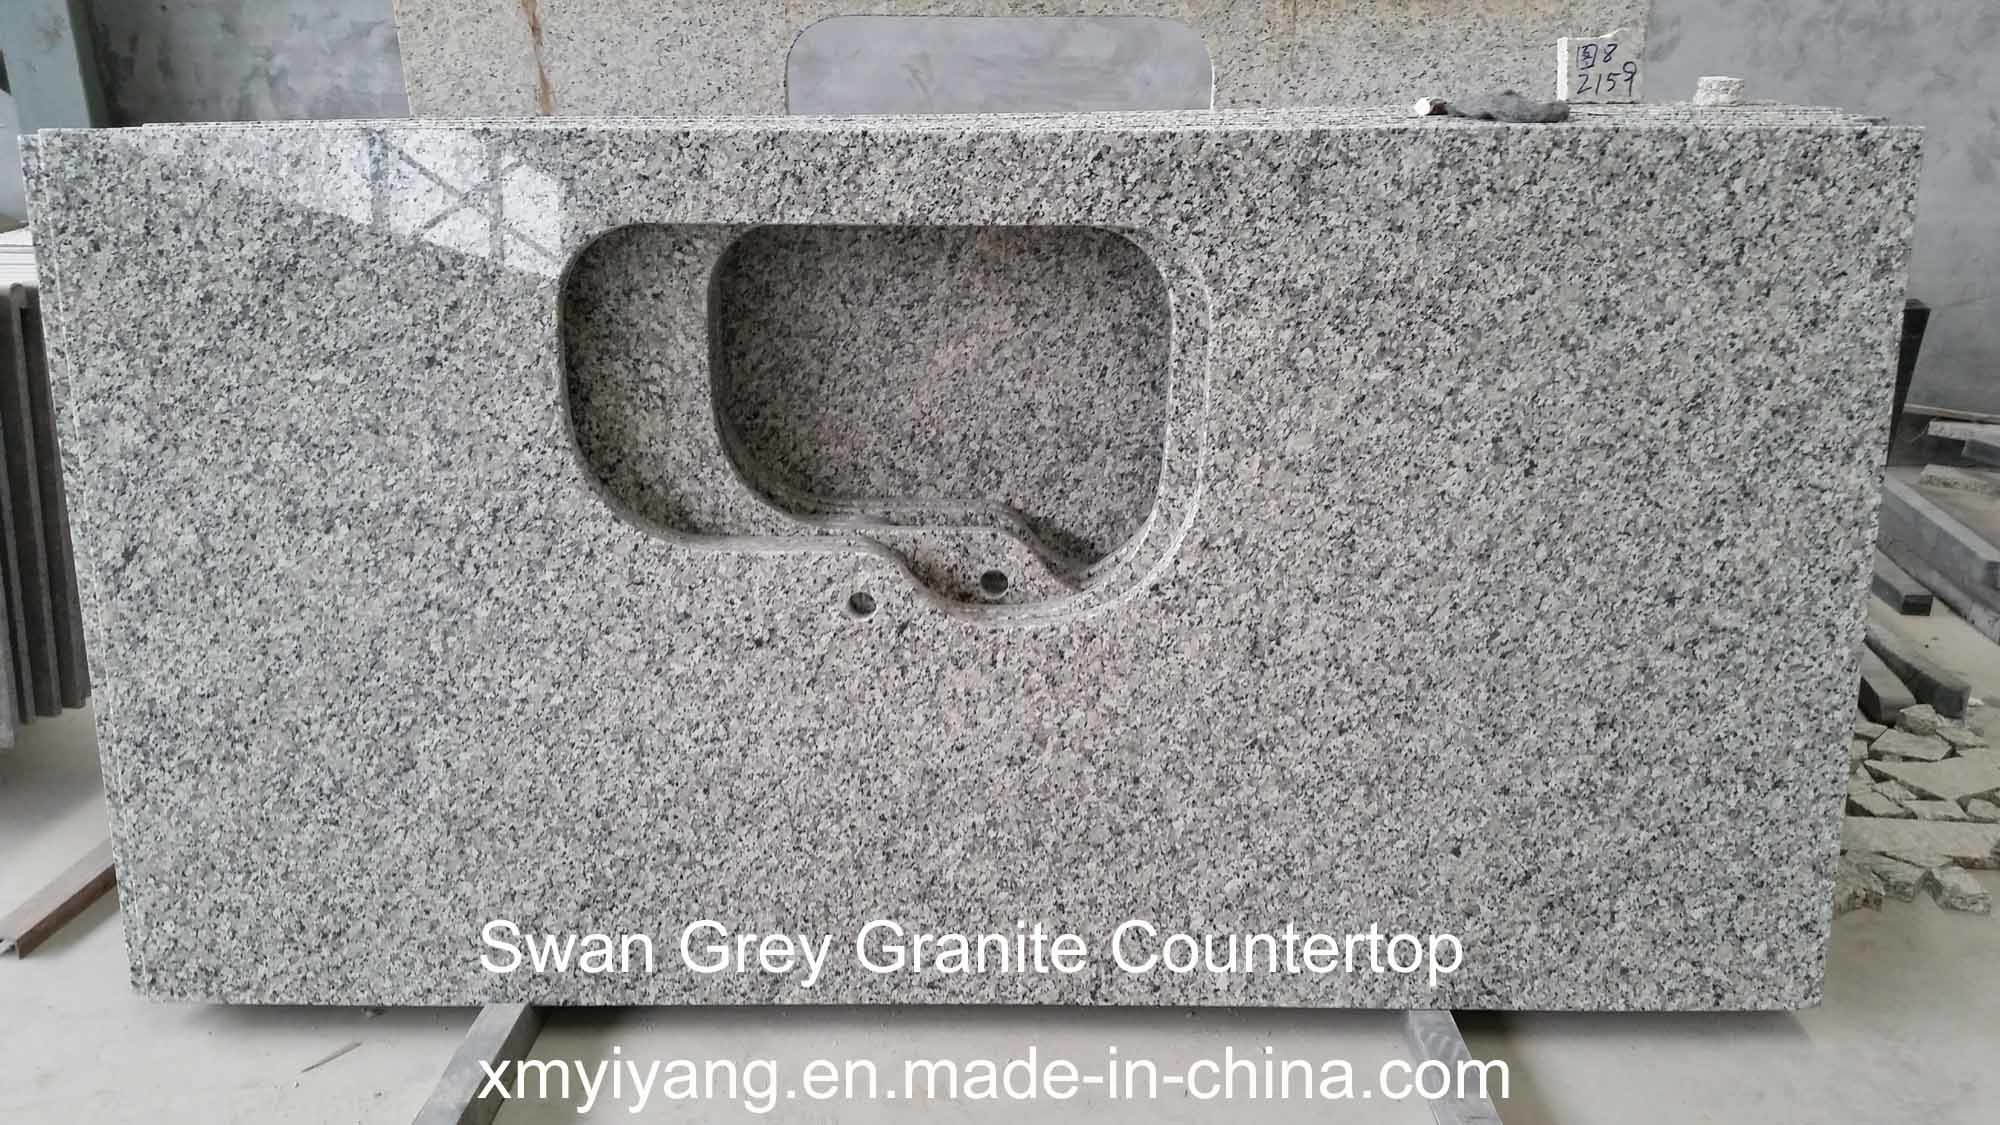 ideas gray granite nice v dutt bathrooms stones for saura countertop